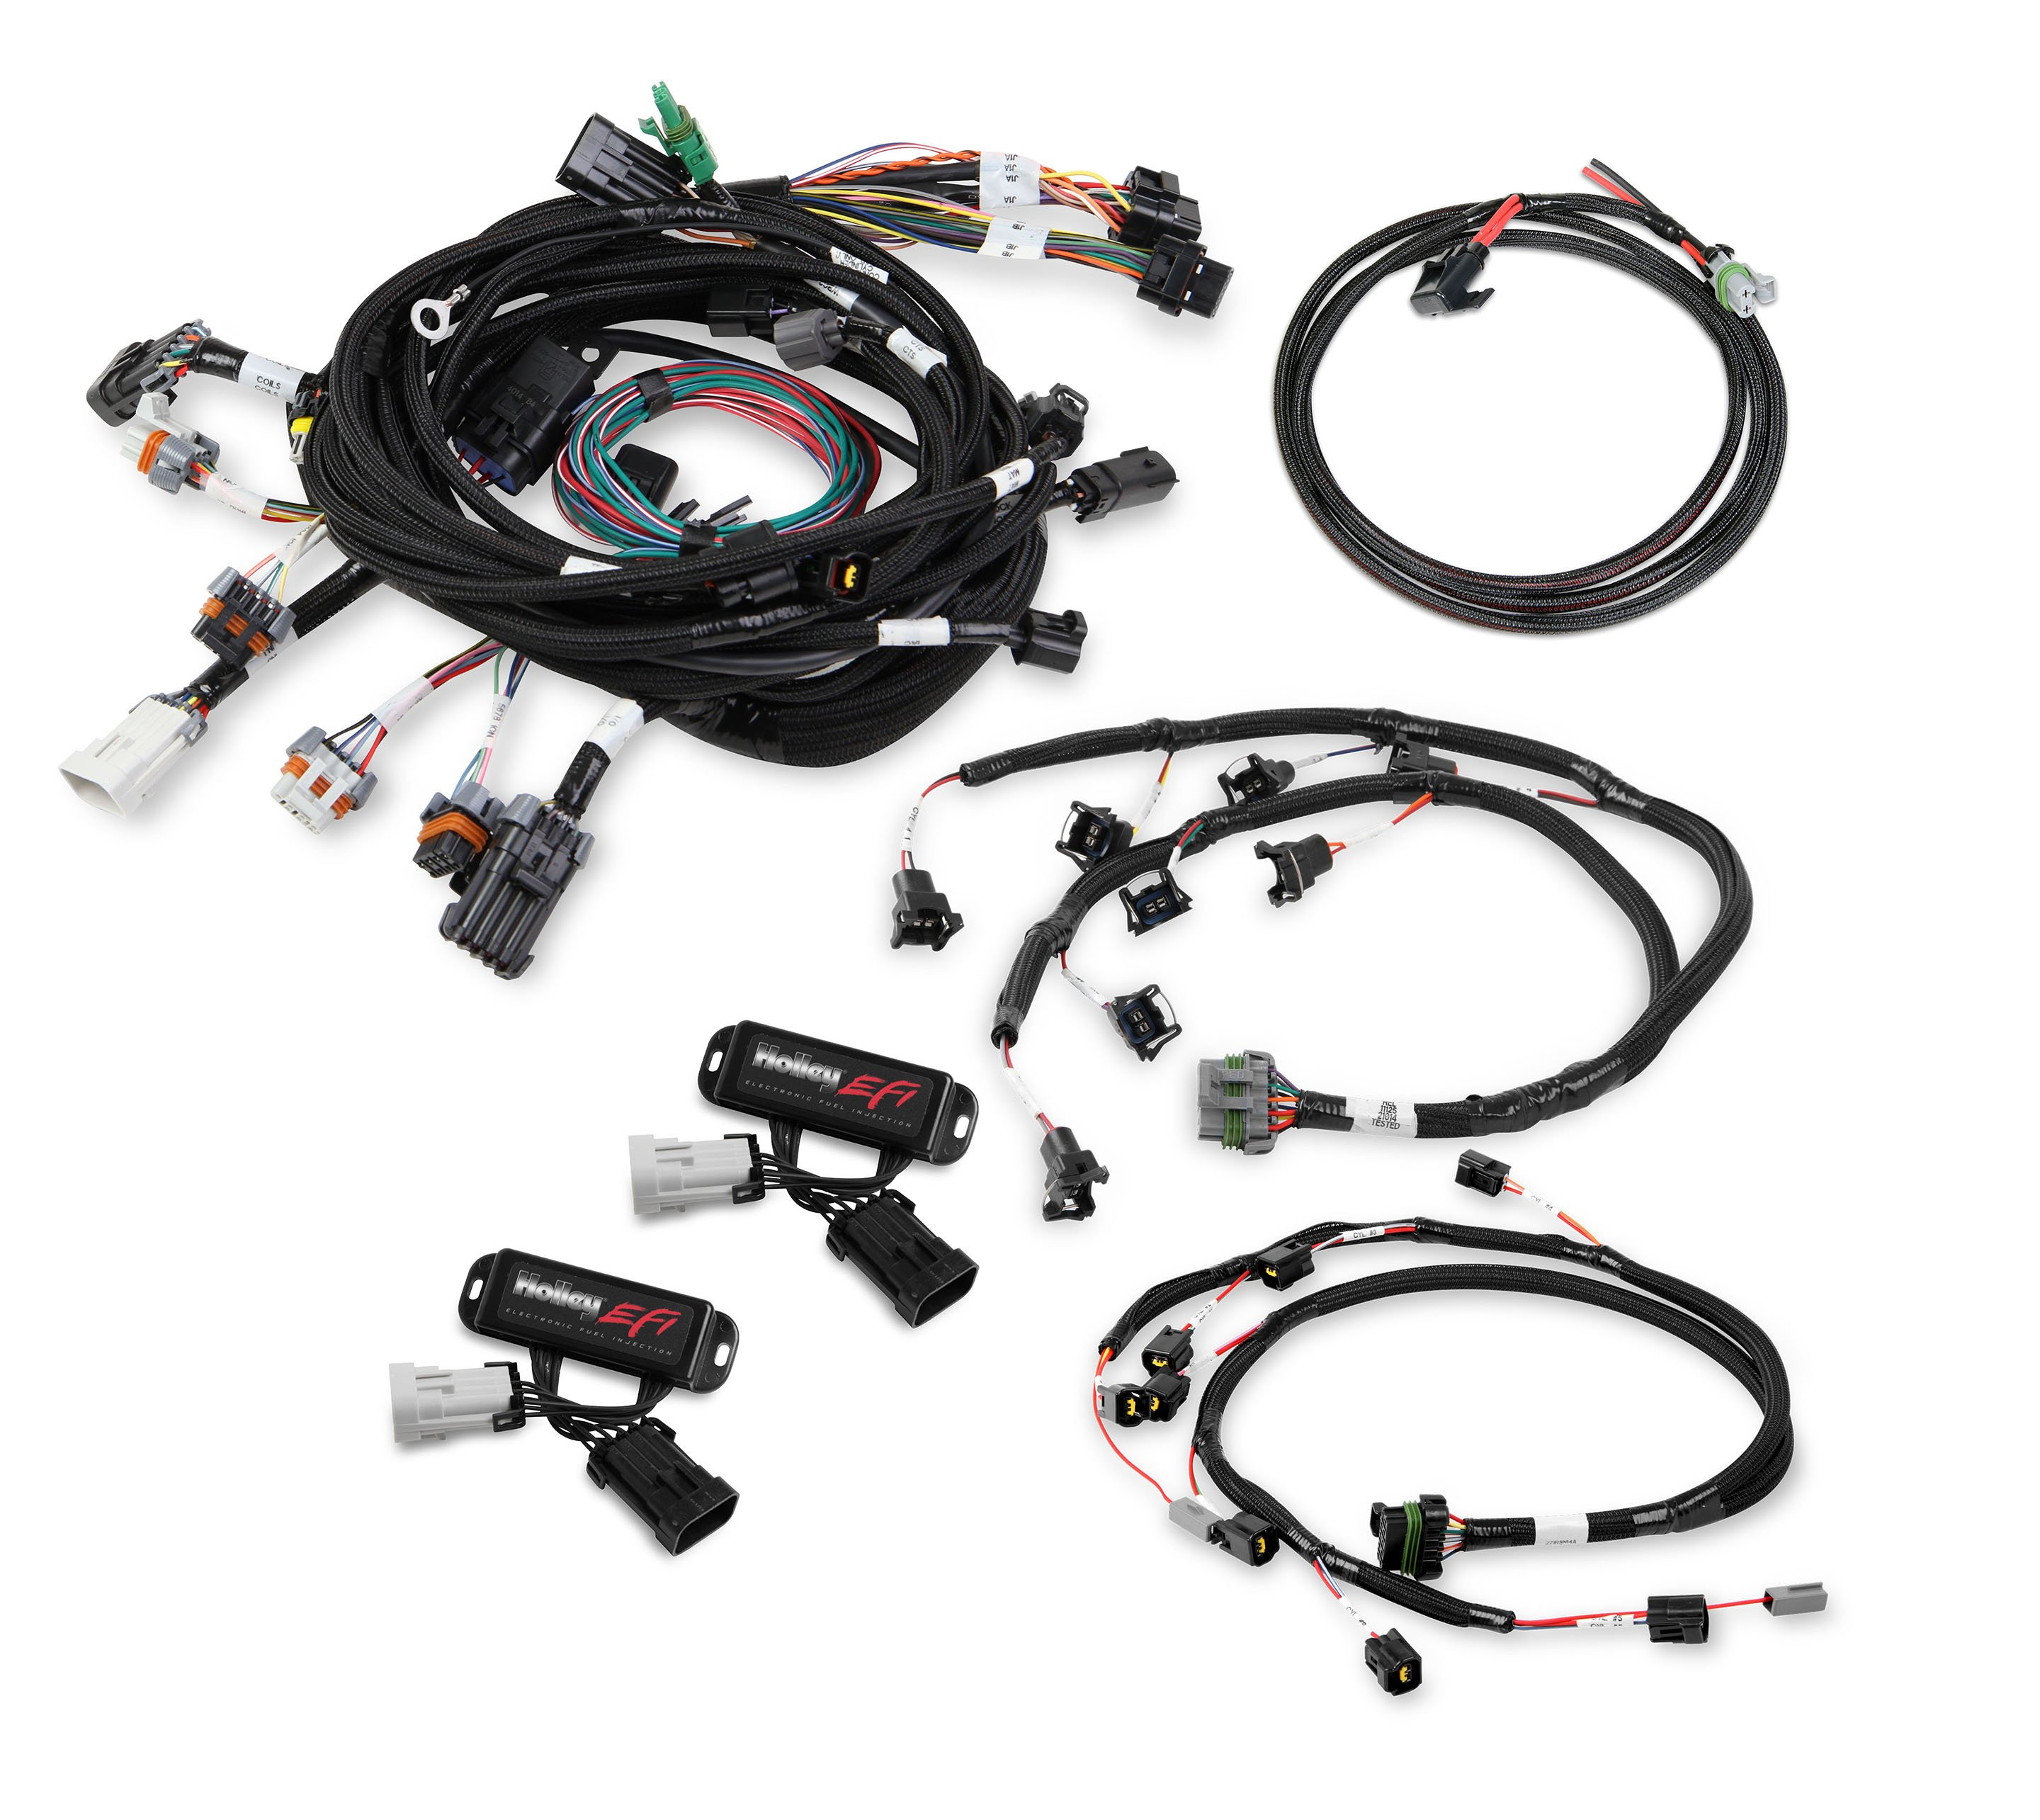 Ford Modular 2 Valve EFI Harness Kit on